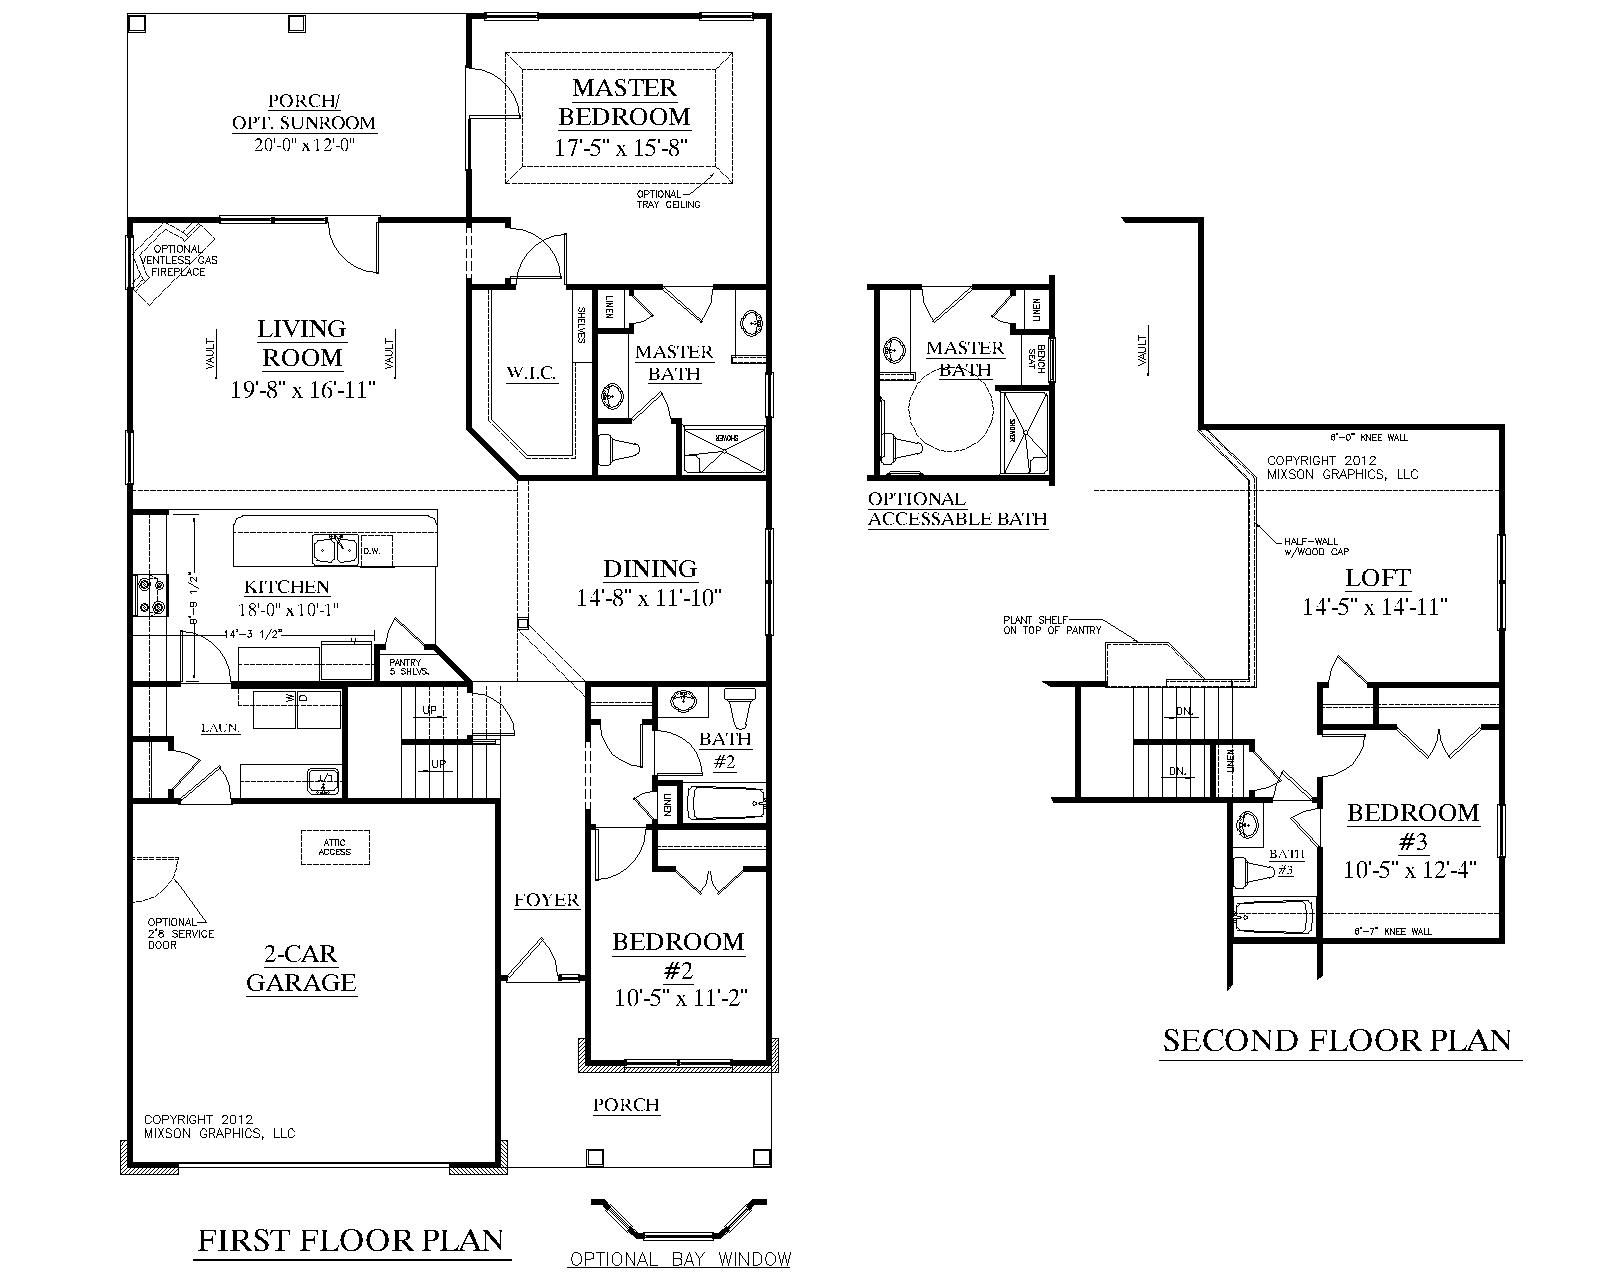 House plan 2224 kingstree floor plan traditional 1 1 2 for 1 5 story house plans with loft